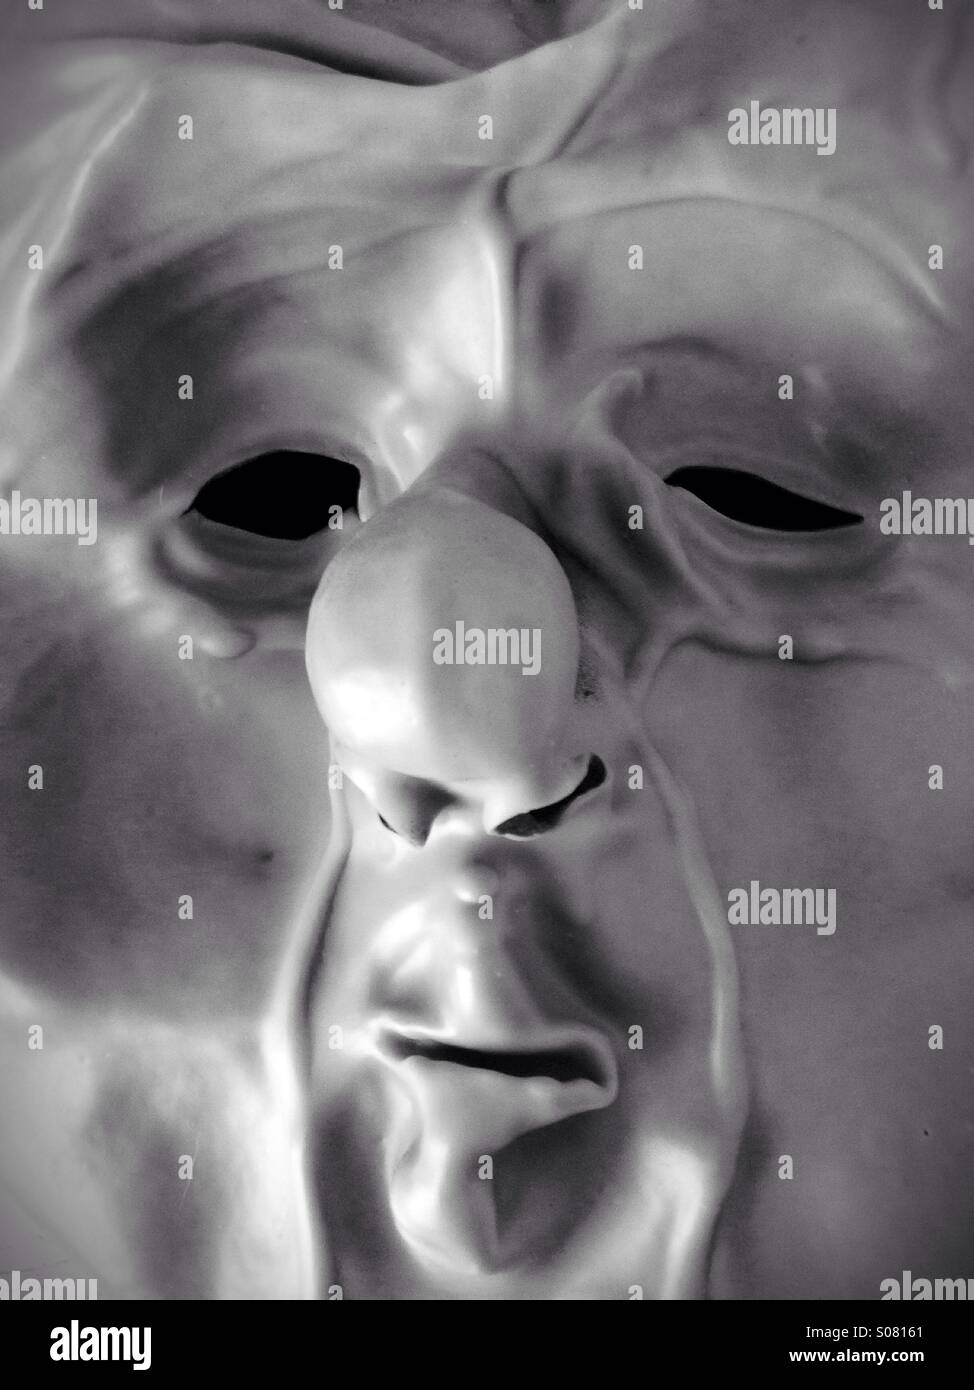 A grotesque face mask turned inside out. - Stock Image